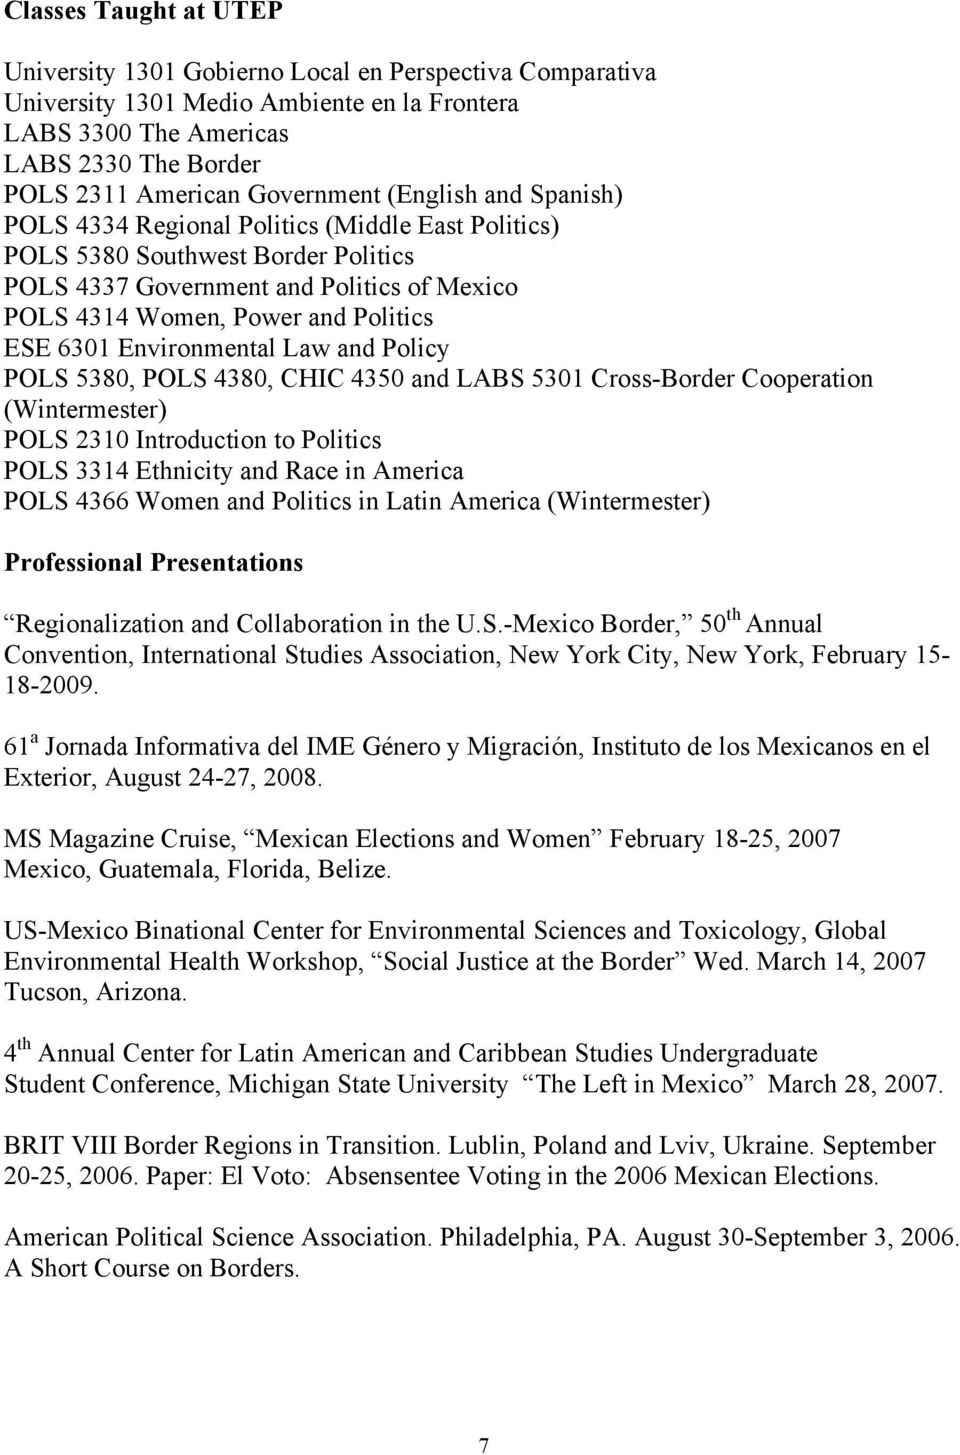 ESE 6301 Environmental Law and Policy POLS 5380, POLS 4380, CHIC 4350 and LABS 5301 Cross-Border Cooperation (Wintermester) POLS 2310 Introduction to Politics POLS 3314 Ethnicity and Race in America